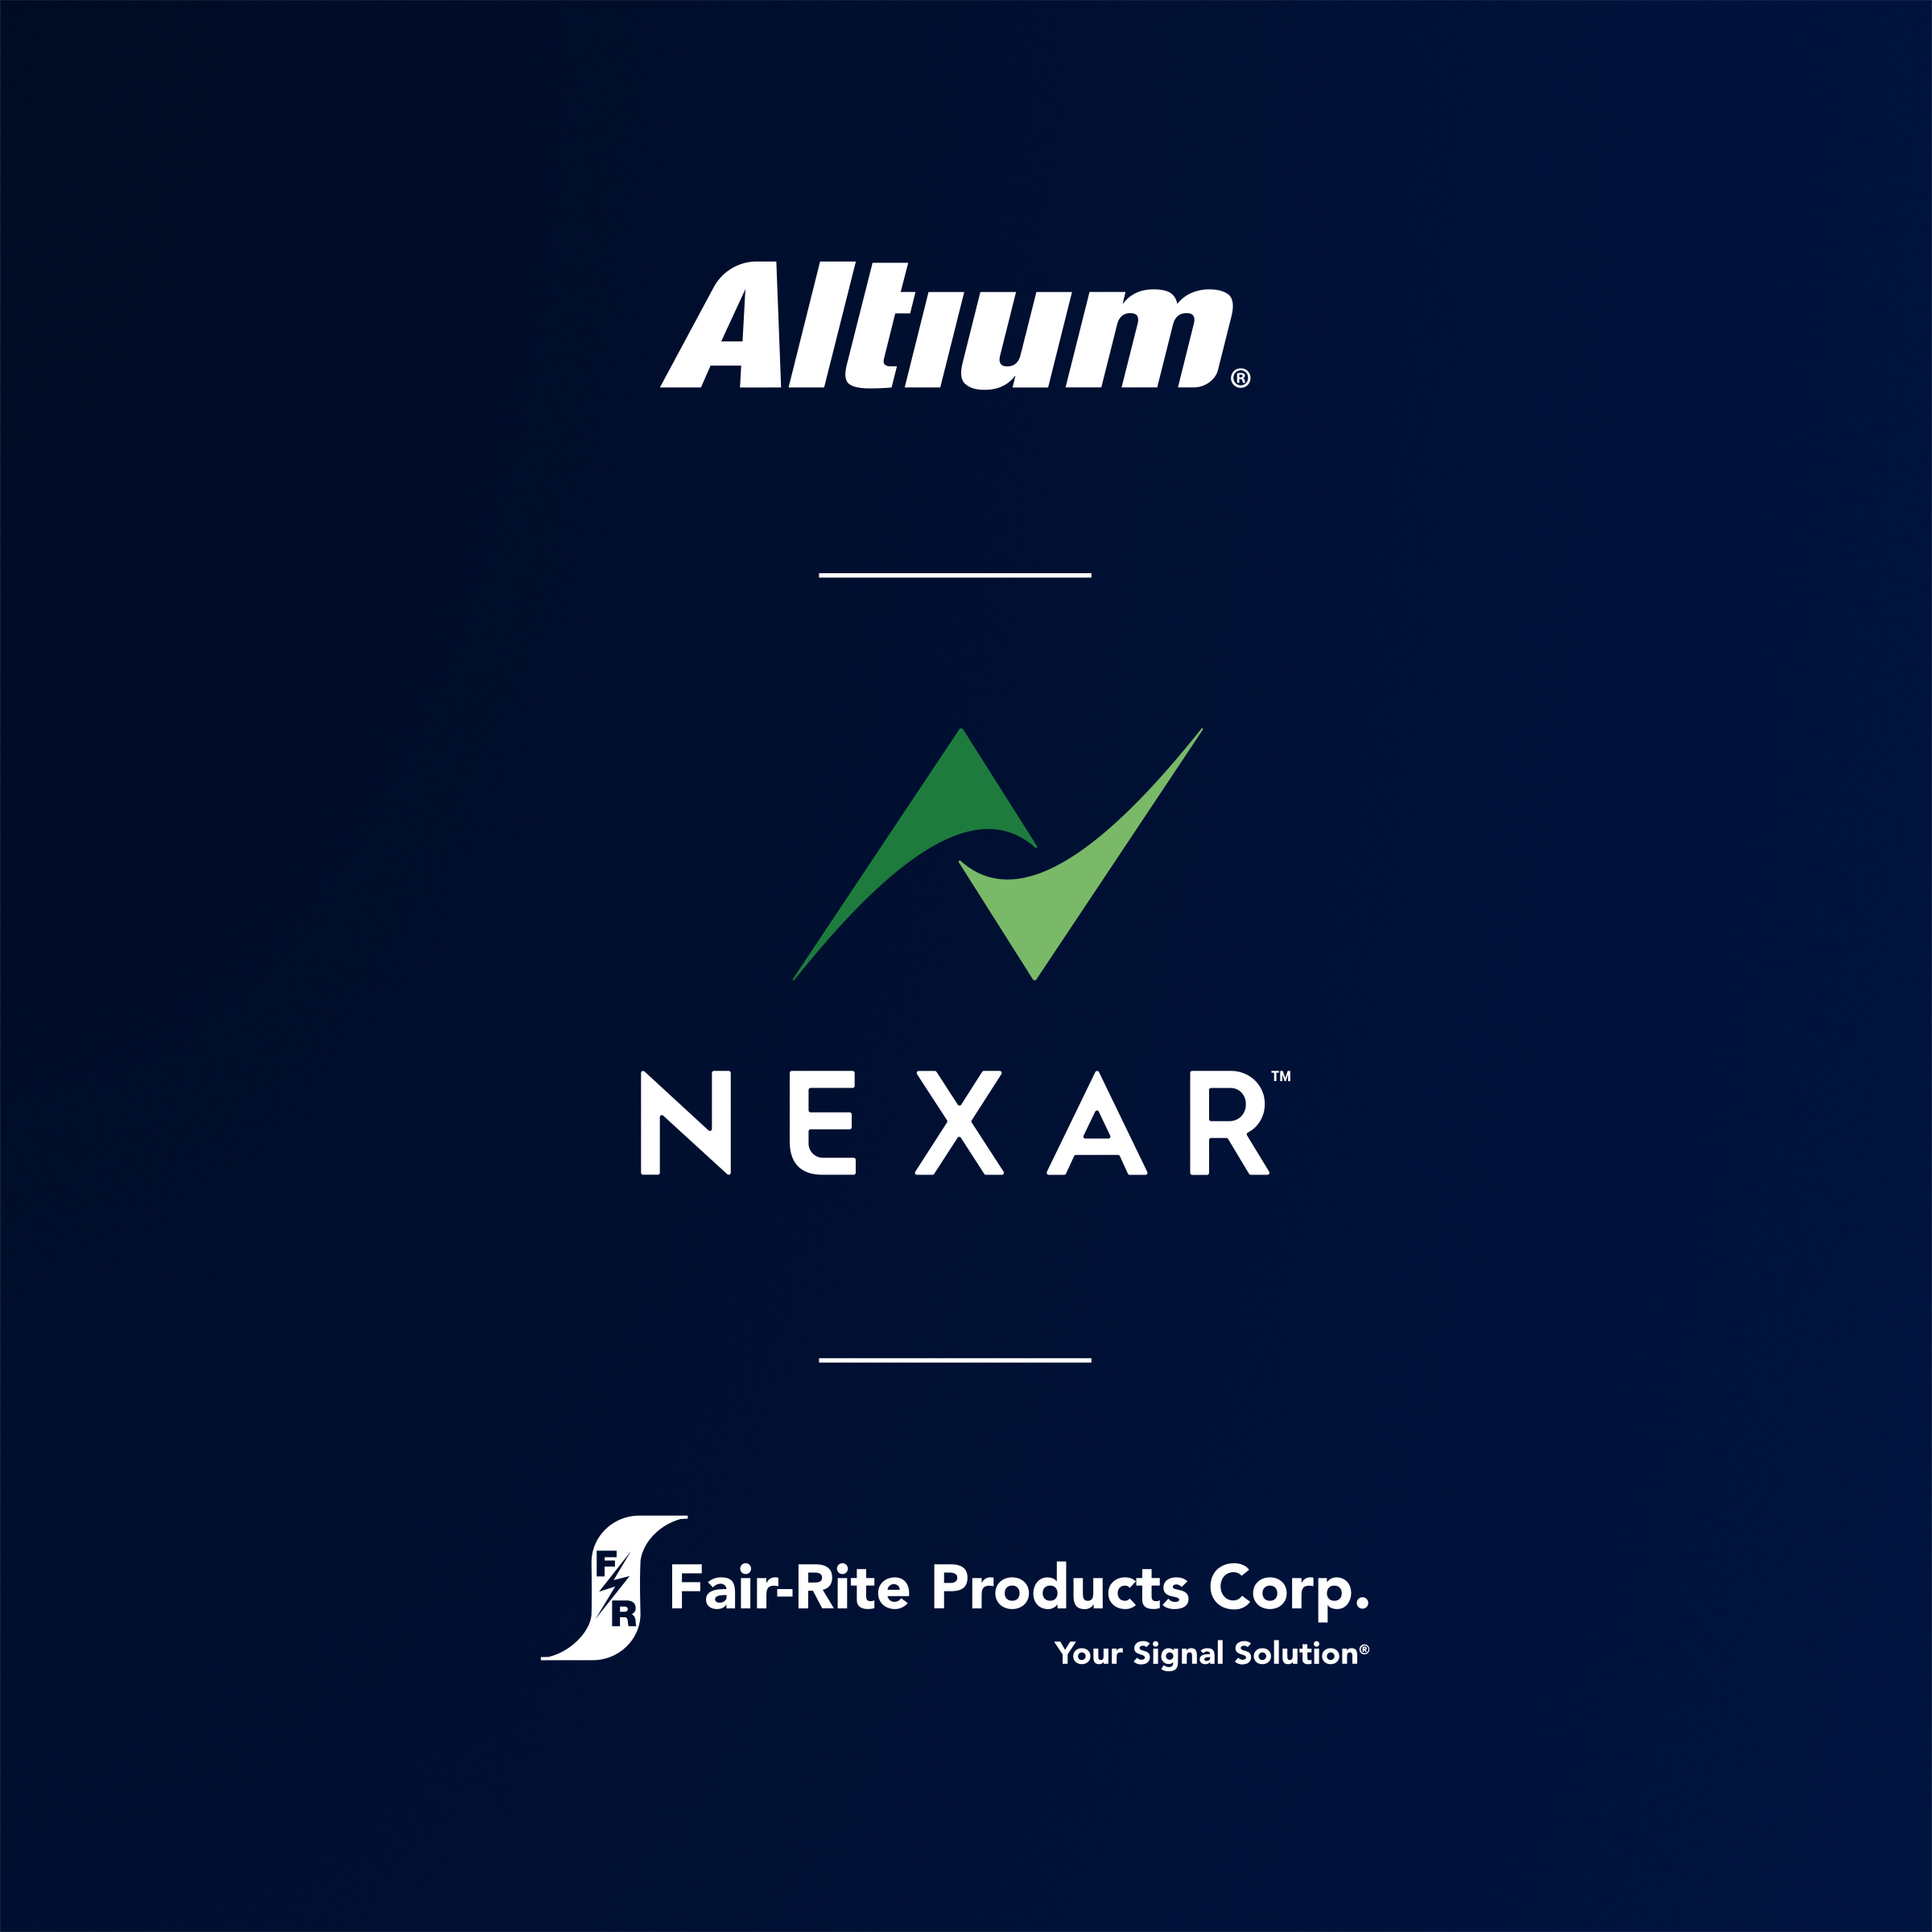 Fair-Rite Products Corporation, a ferrite product manufacturing company, is the first partner to launch Nexar's Global Price & Availability (GP&A) tool on their website, helping to expedite customer searches for stock availability from multiple distributors in one central location. (Photo: Altium LLC)